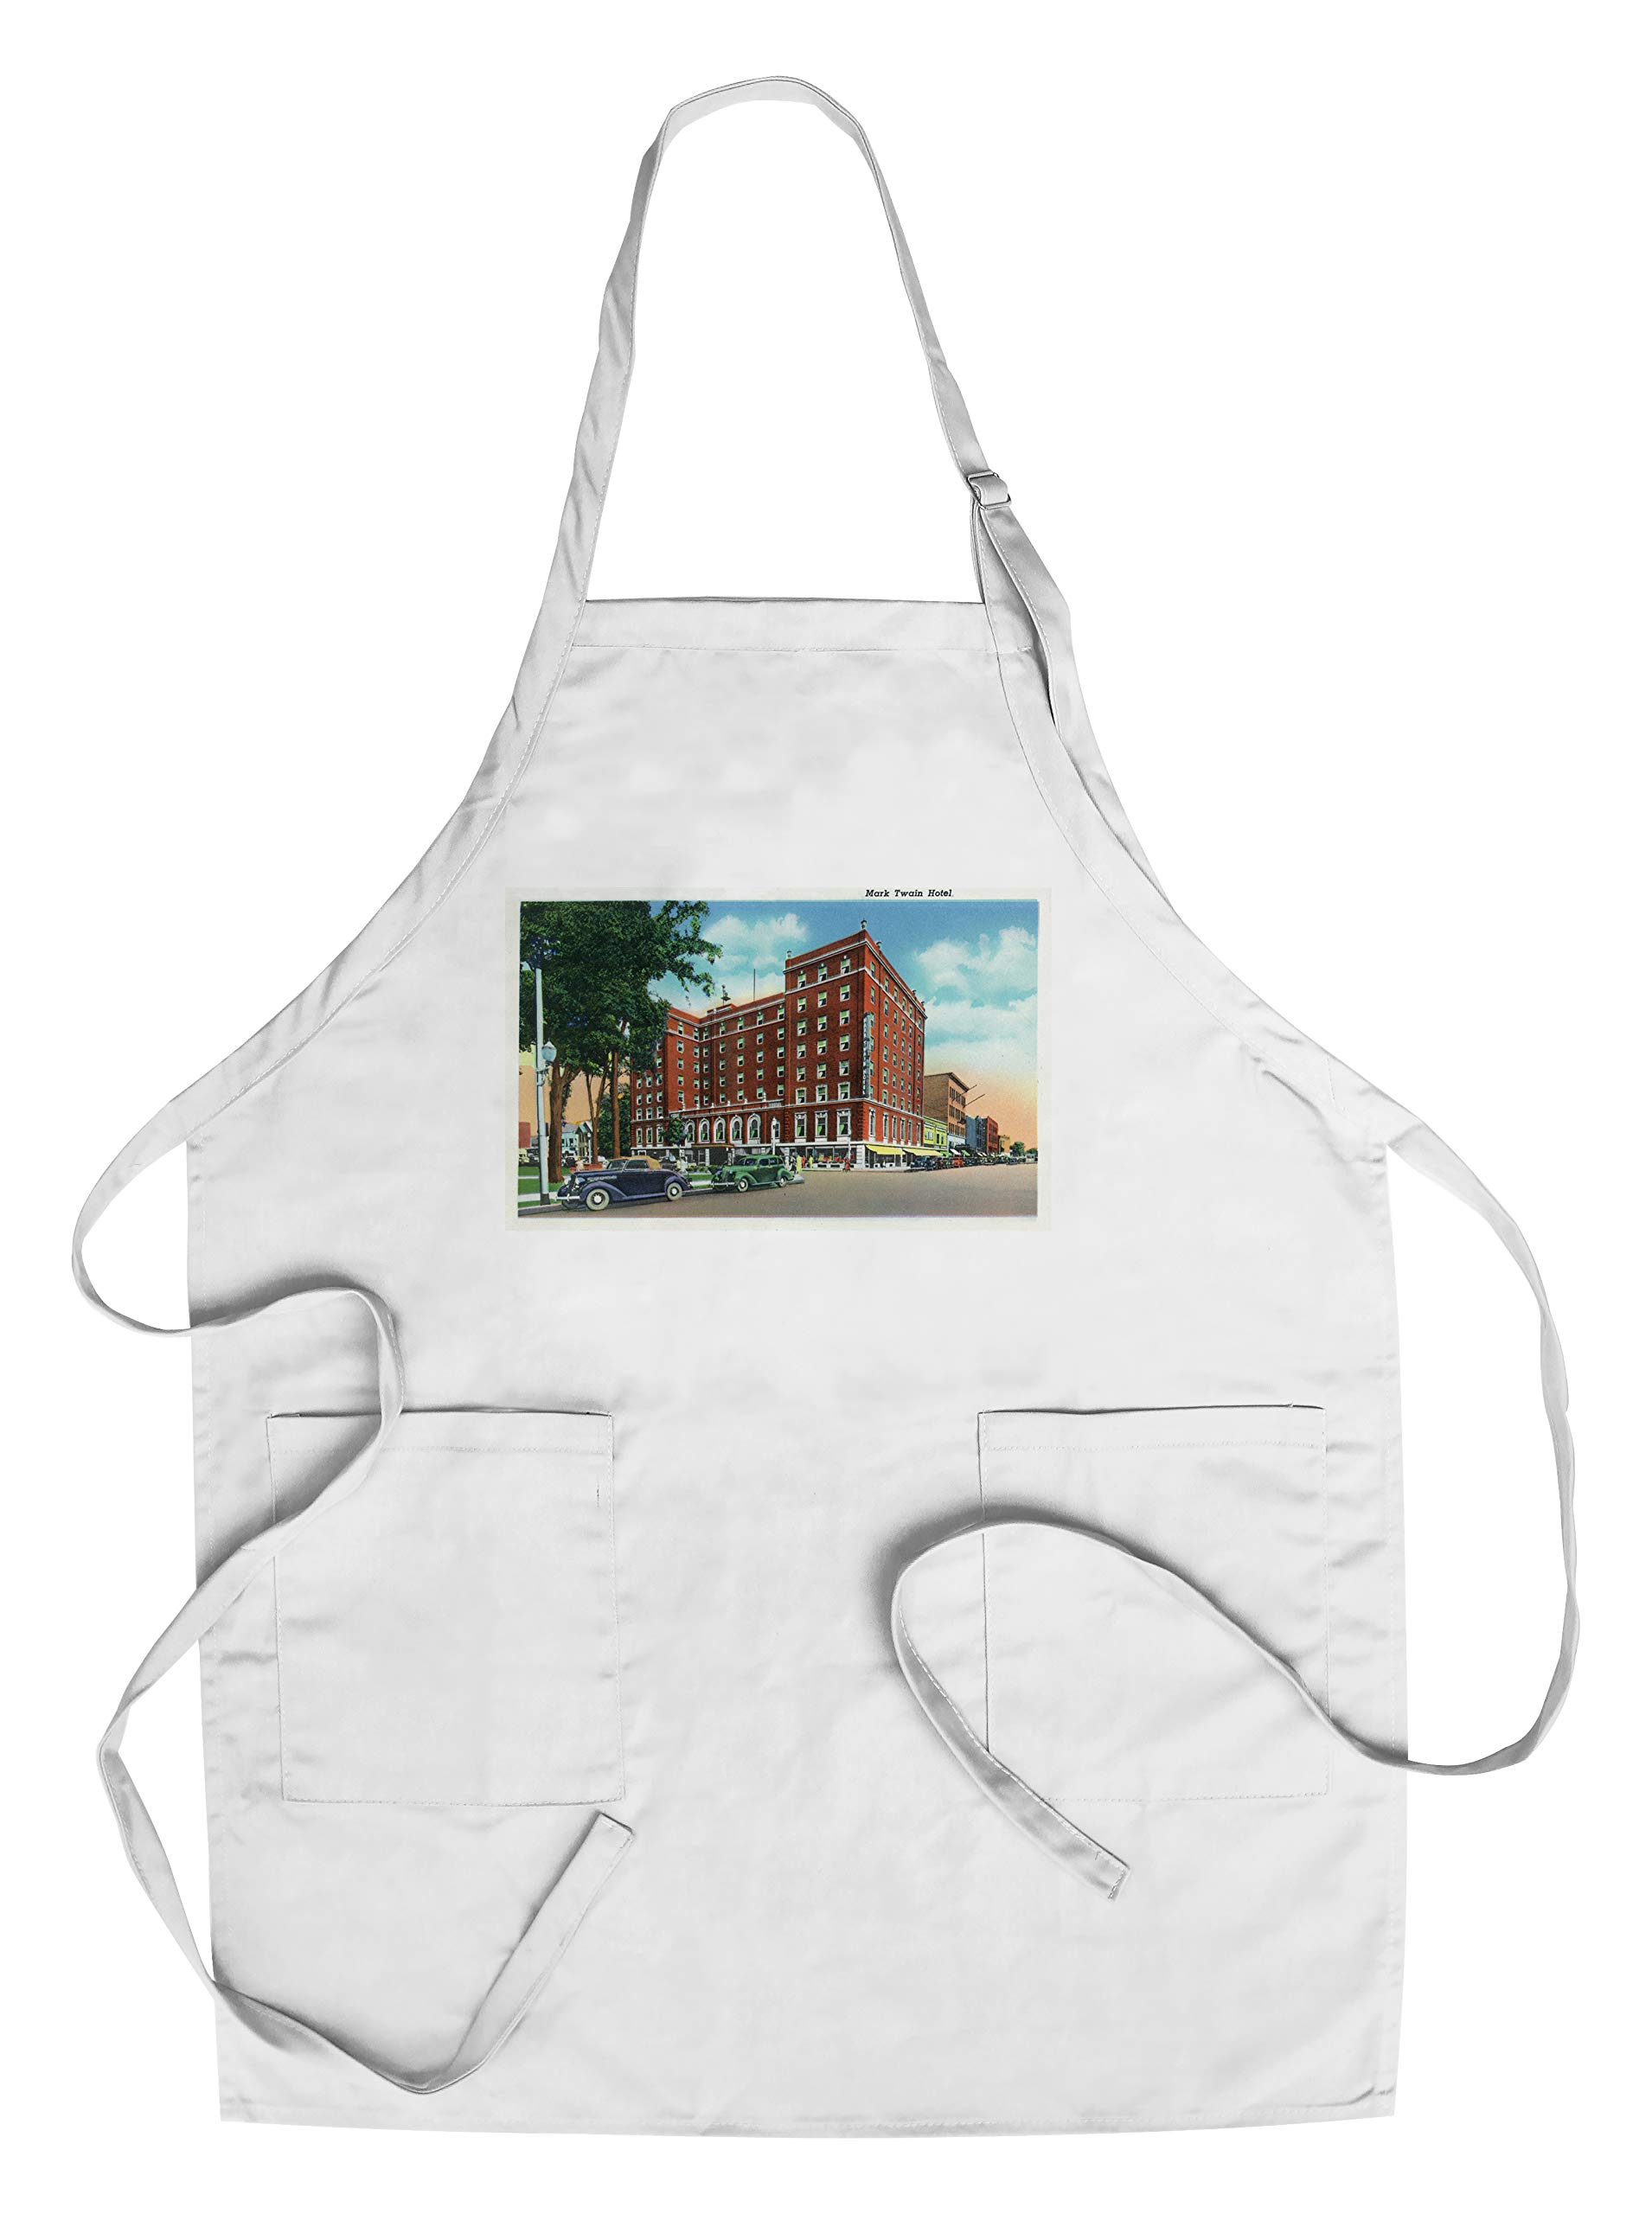 Elmira, New York - Exterior View of the Mark Twain Hotel (Cotton/Polyester Chef's Apron)